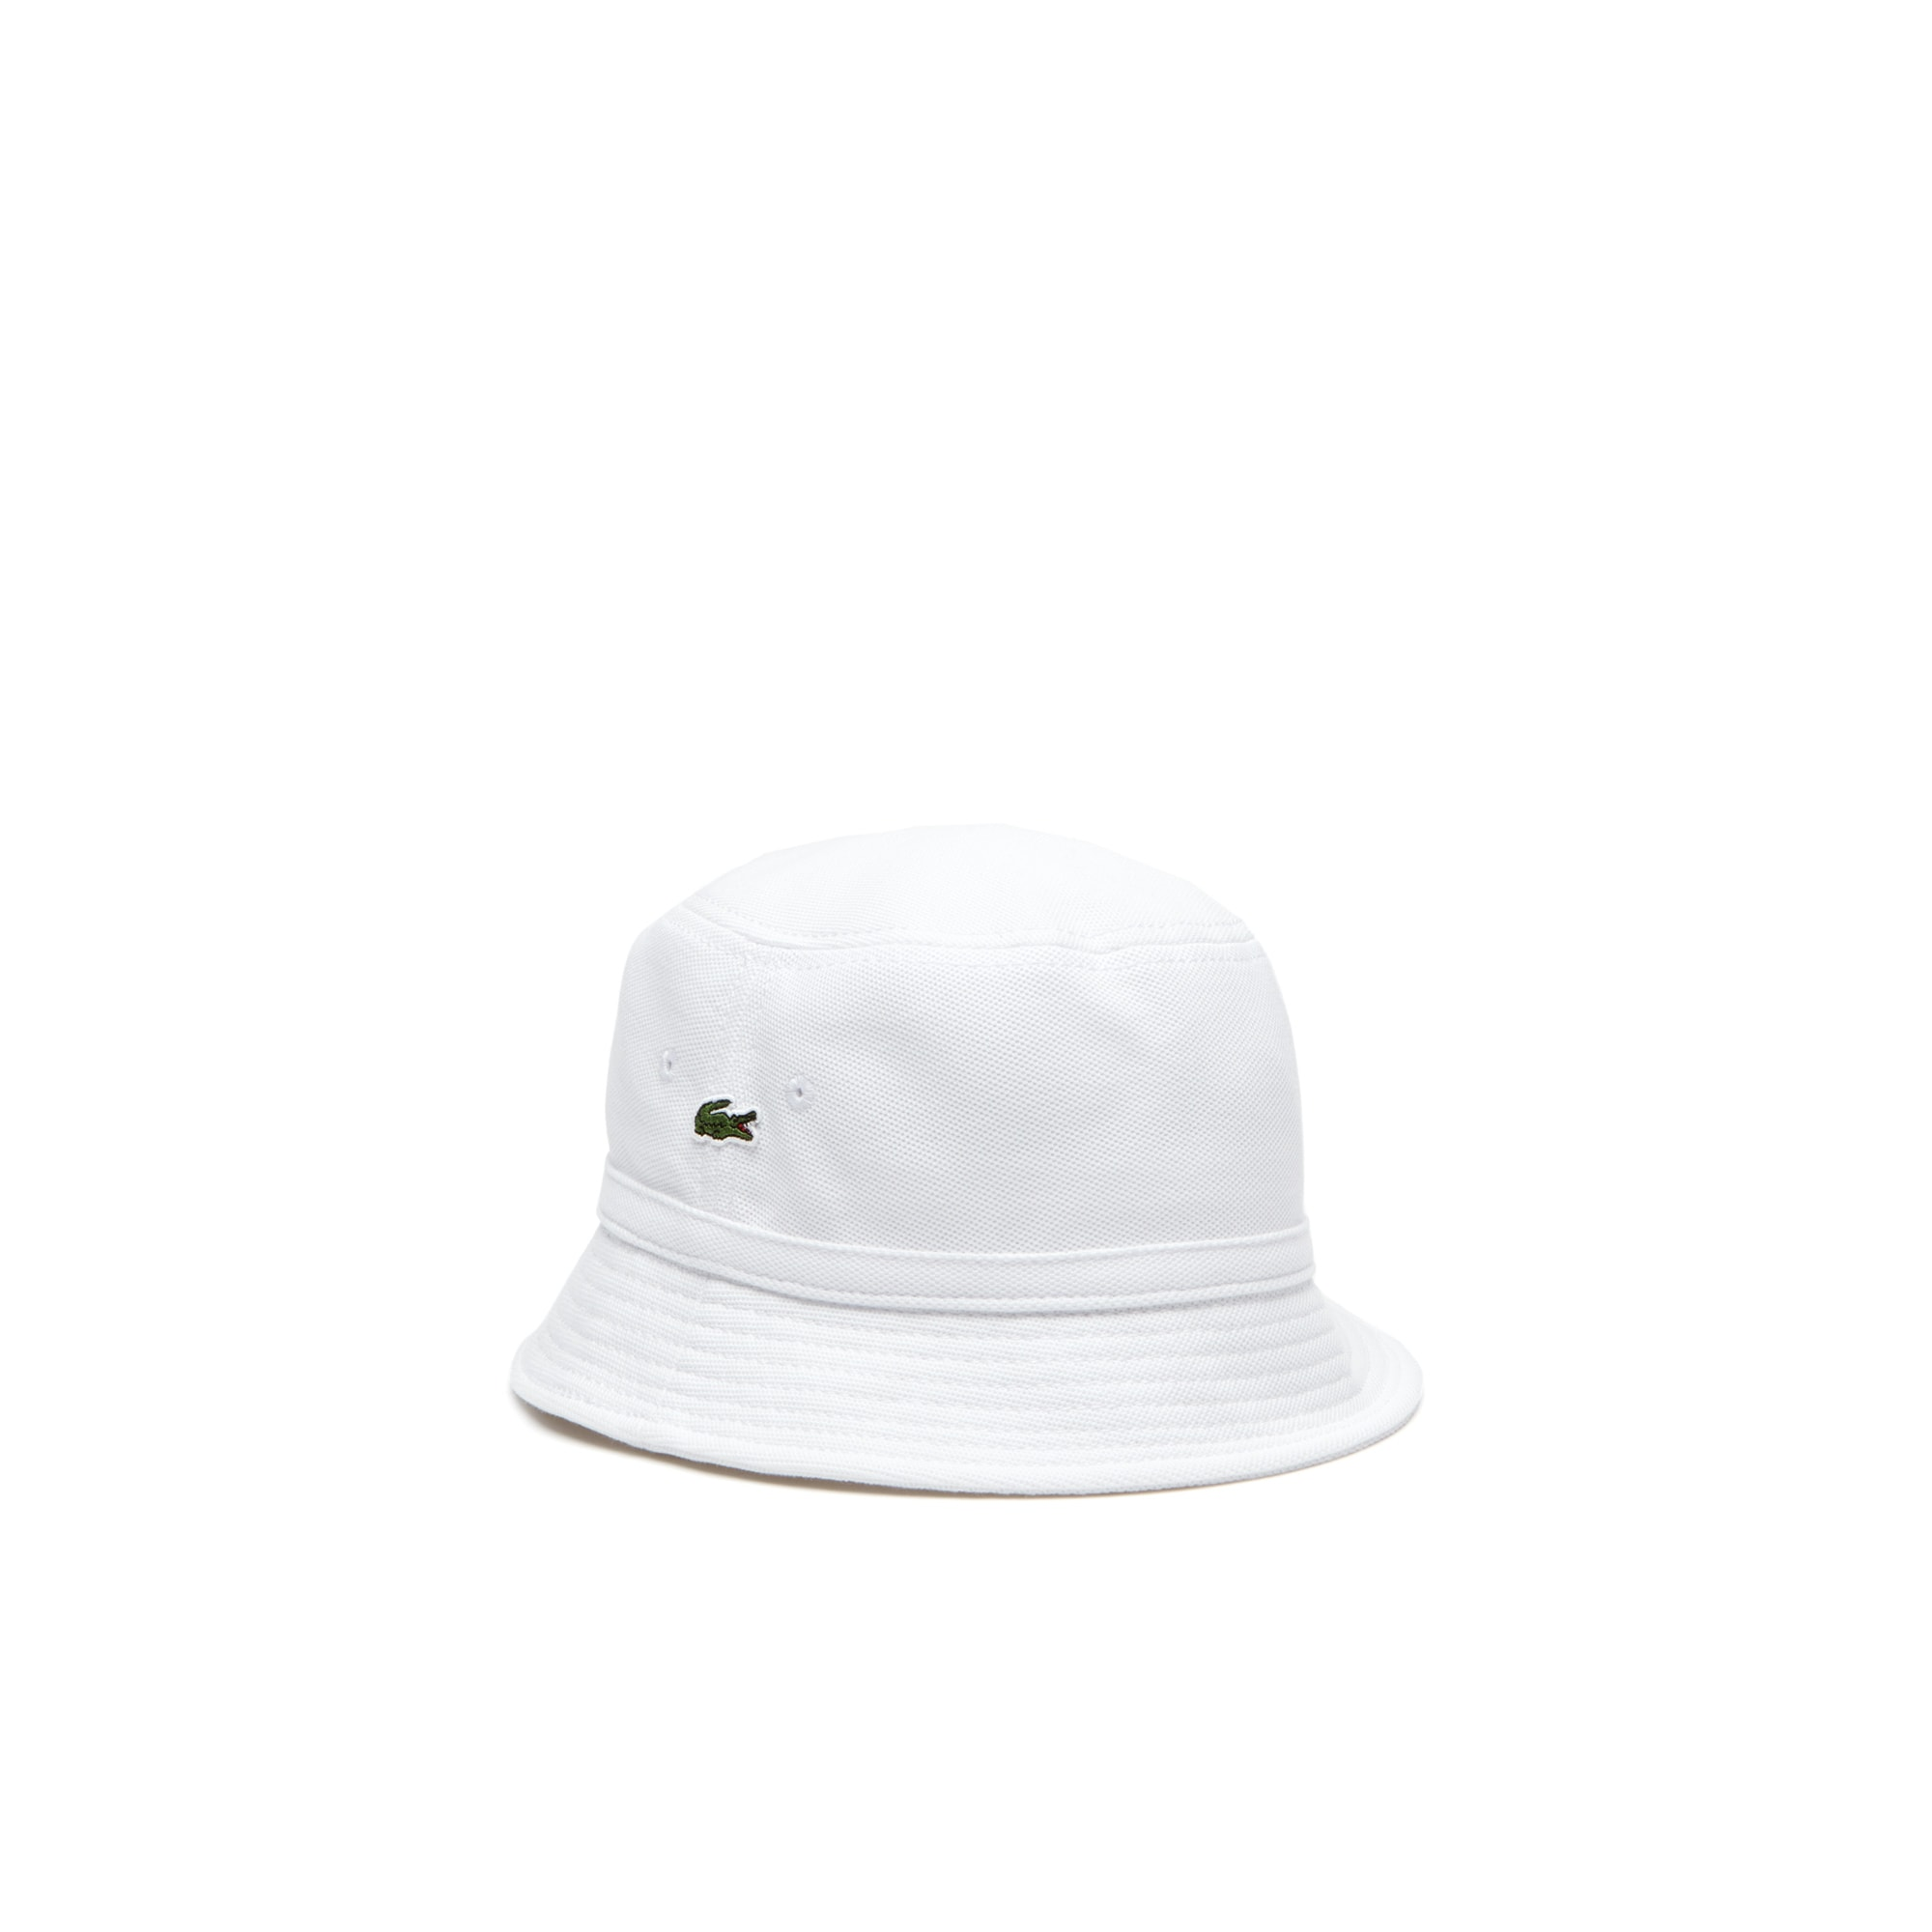 라코스테 Lacoste Mens Cotton pique bucket hat,white